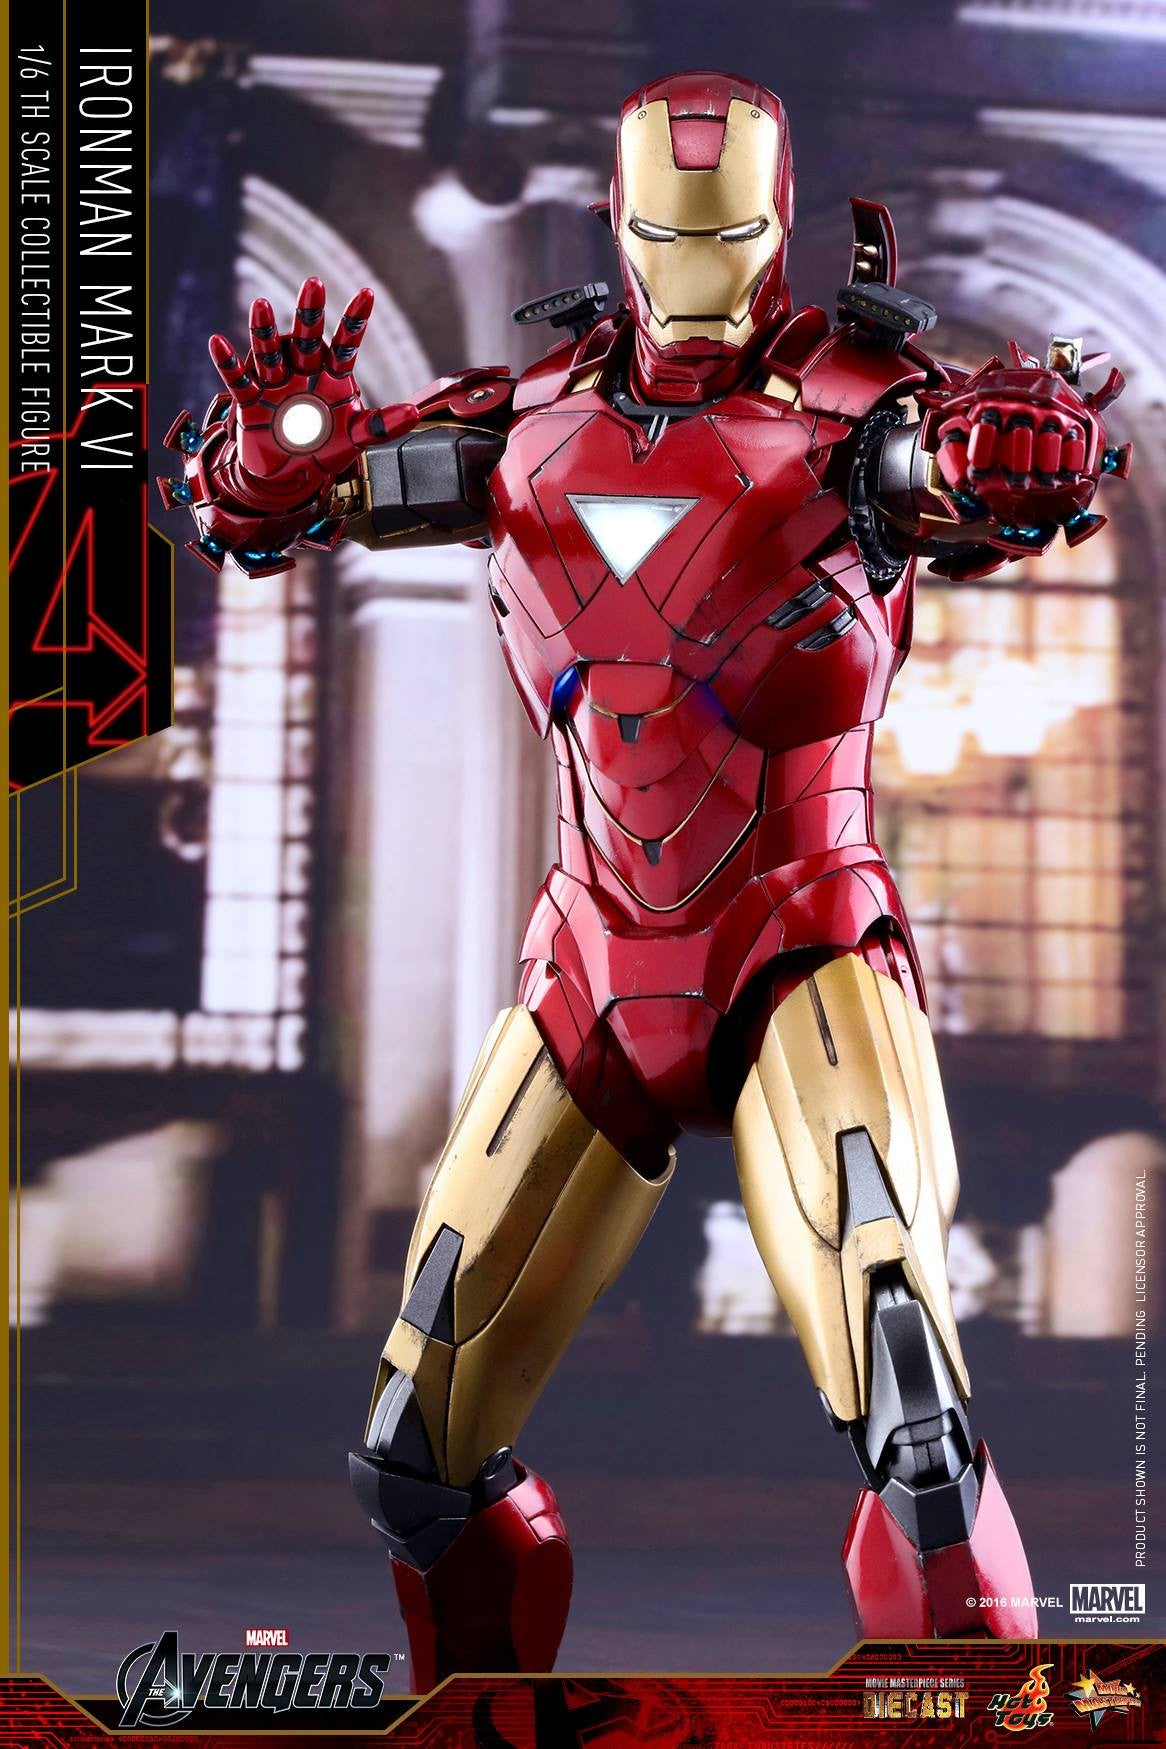 Hot Toys - MMS378D17 - The Avengers - Iron Man Mark VI (DIECAST) (Normal Edition) - Marvelous Toys - 9